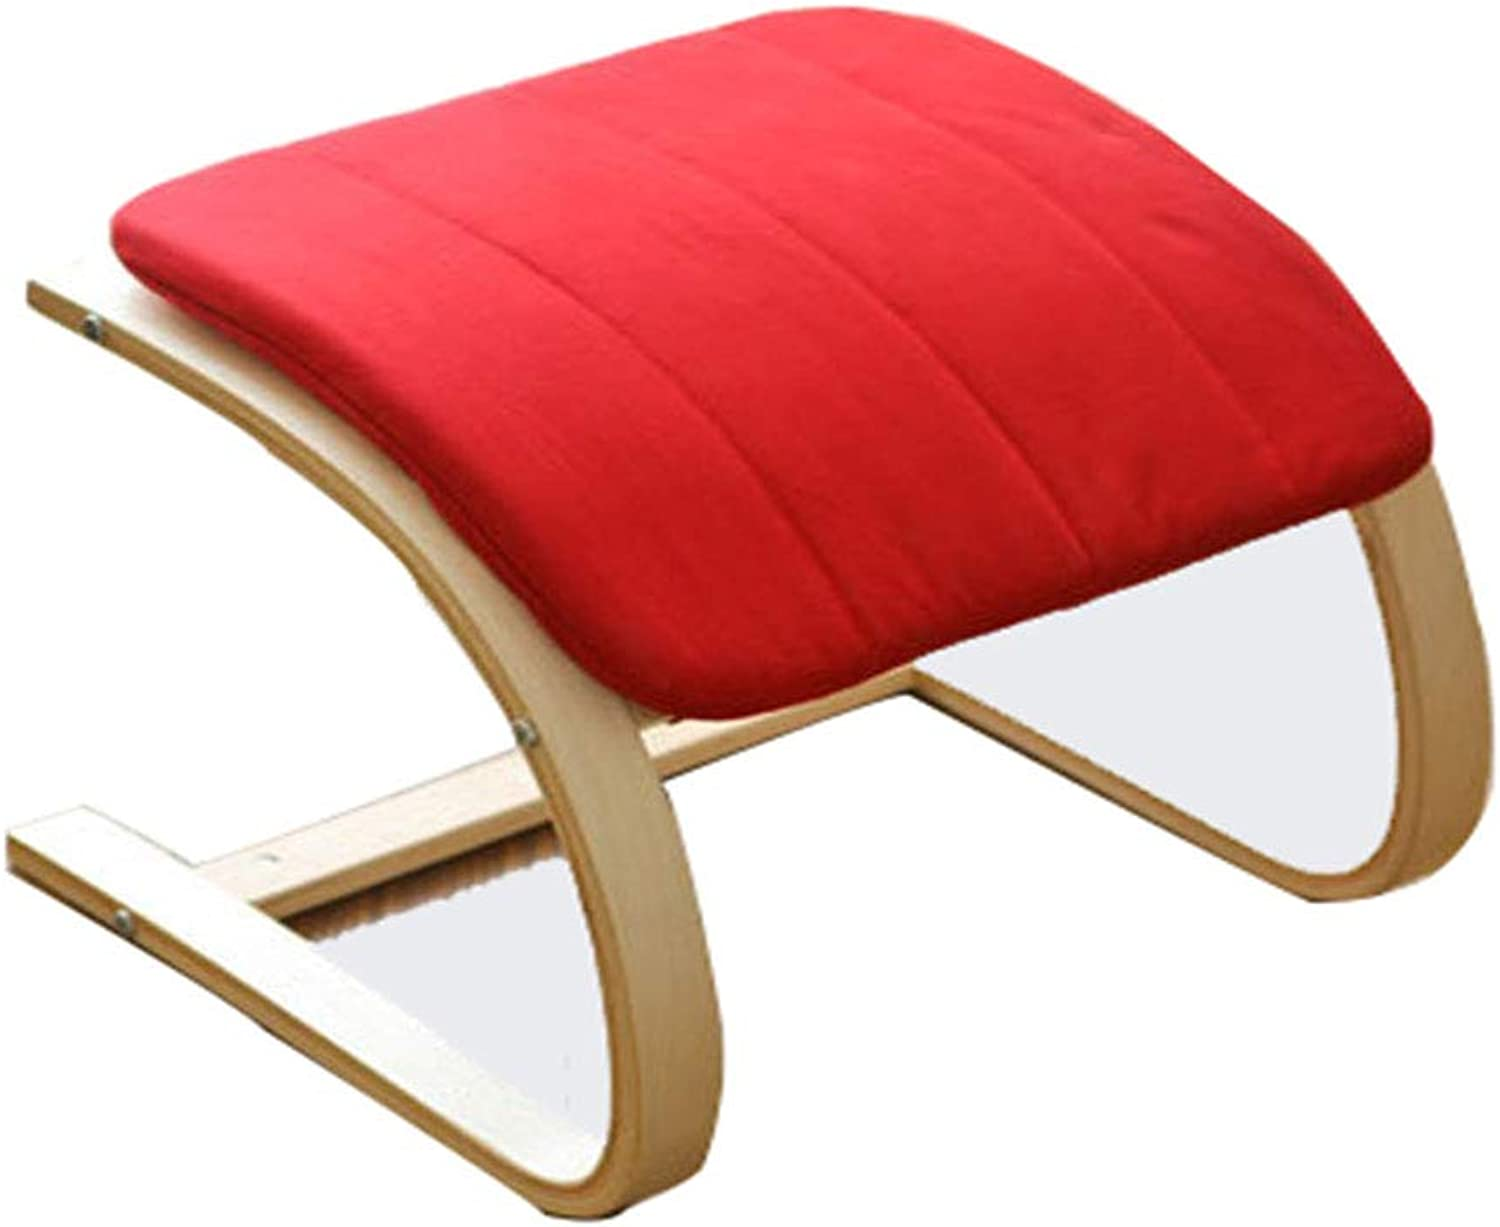 Solid Wood Footstool Curved Wooden Curved Footrest Low Stools Placed Foot Stools,Red